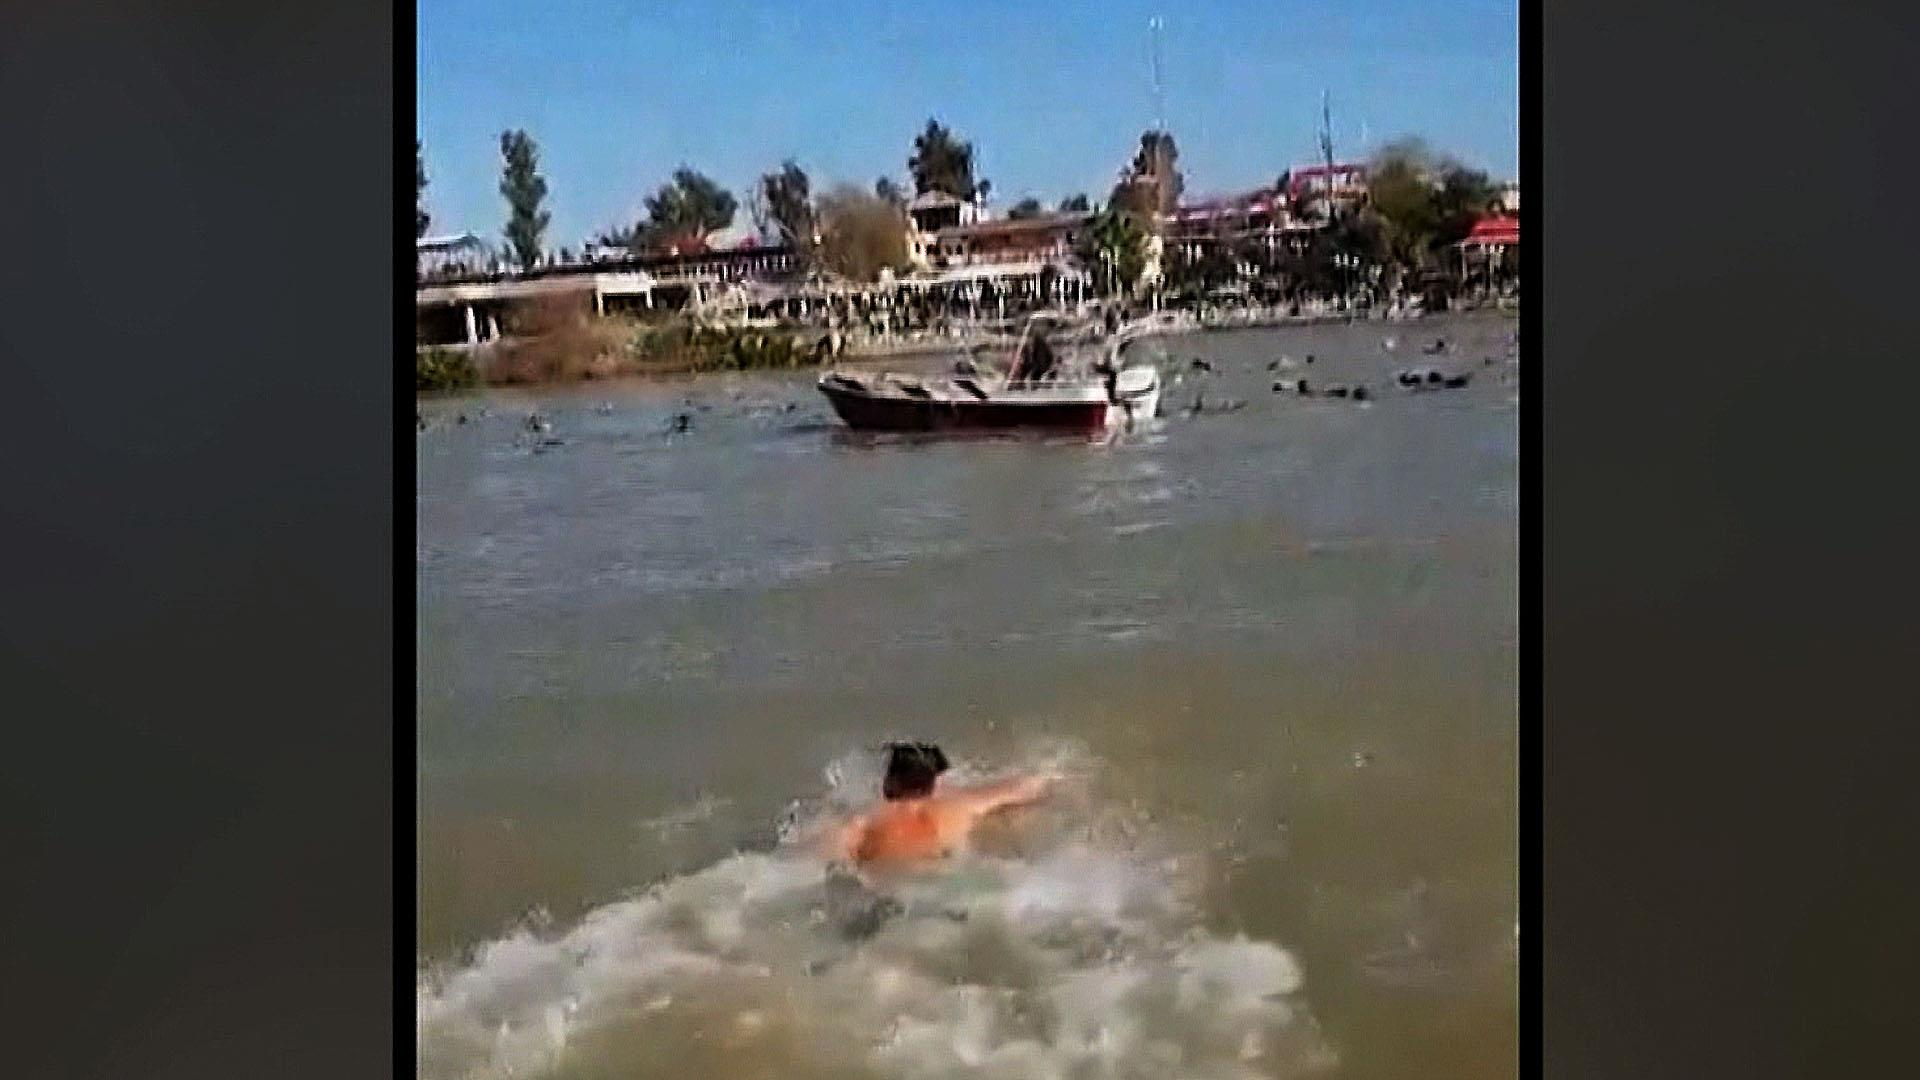 Ferry sinks in Iraq while bystanders watch in horror